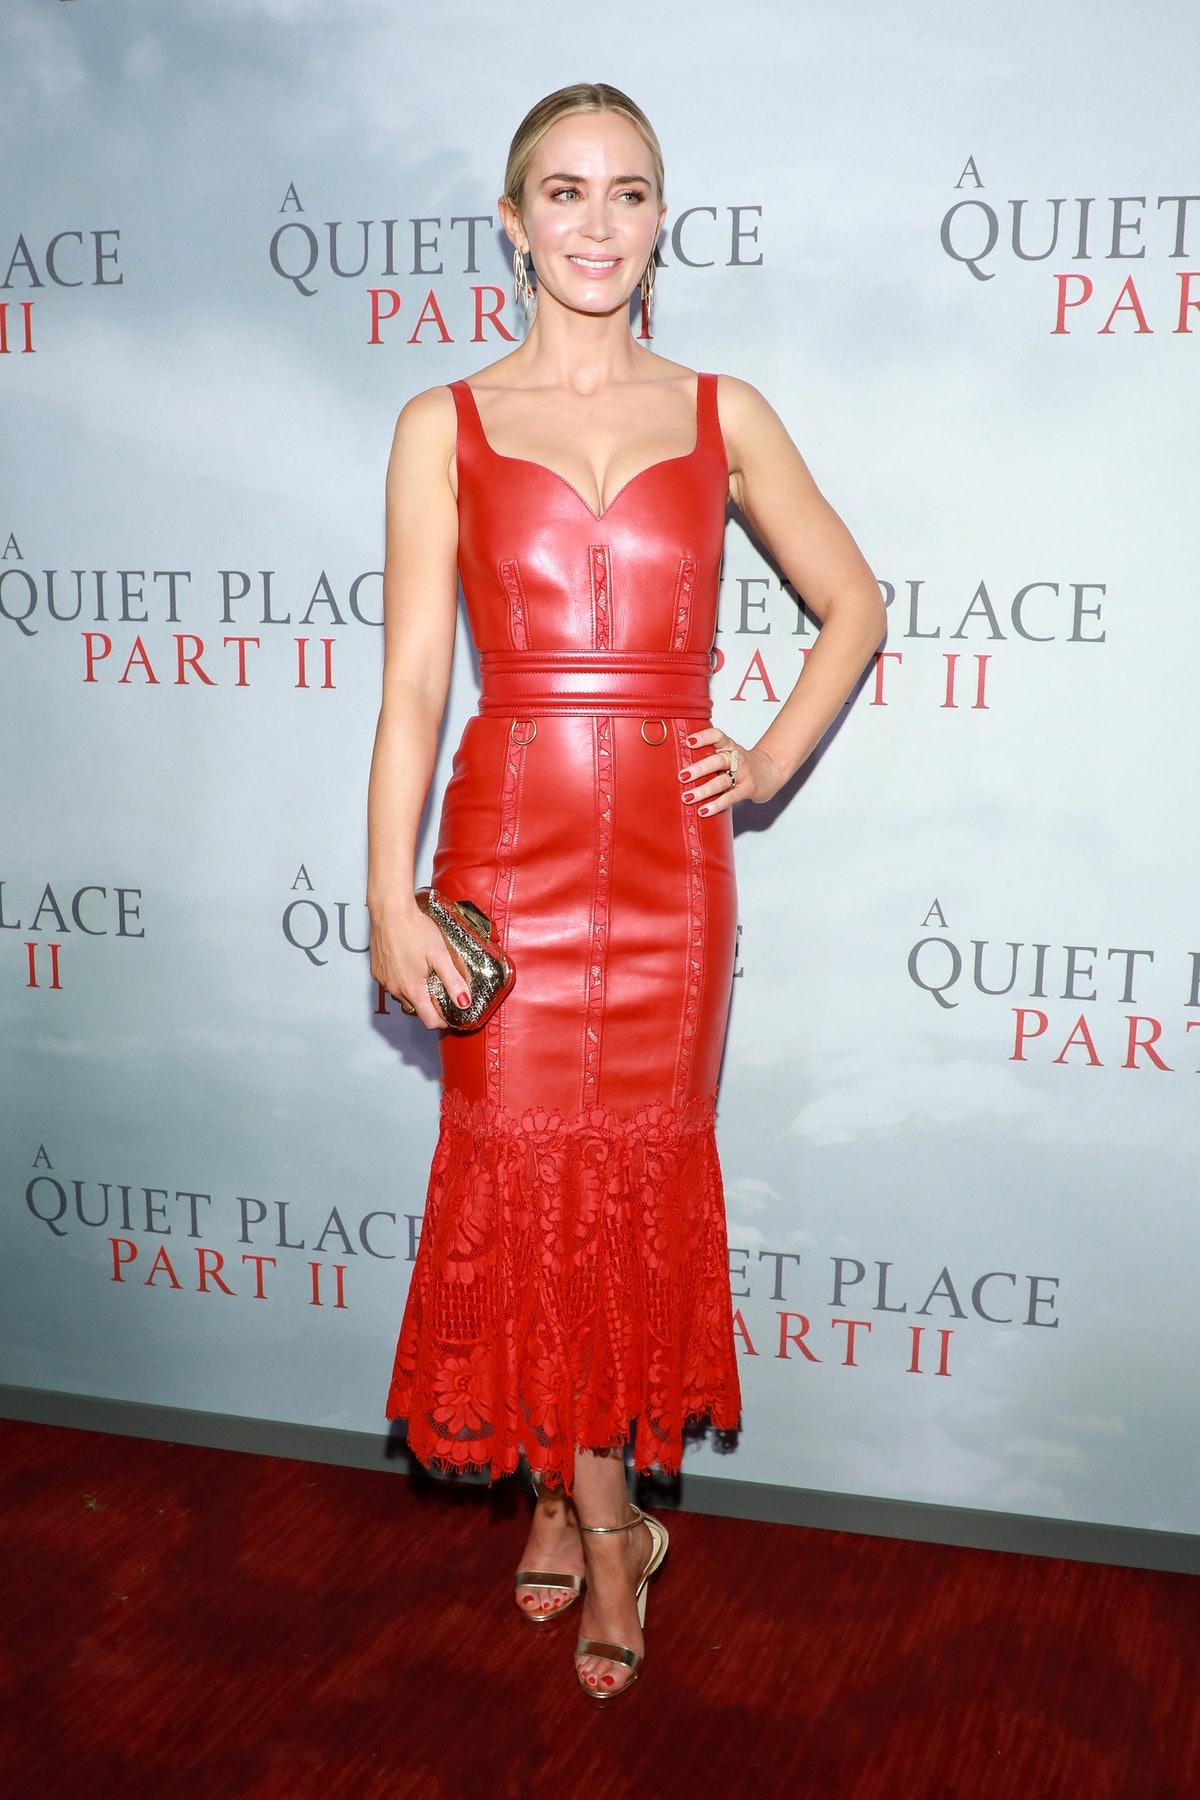 Emily Blunt in red leather dress.